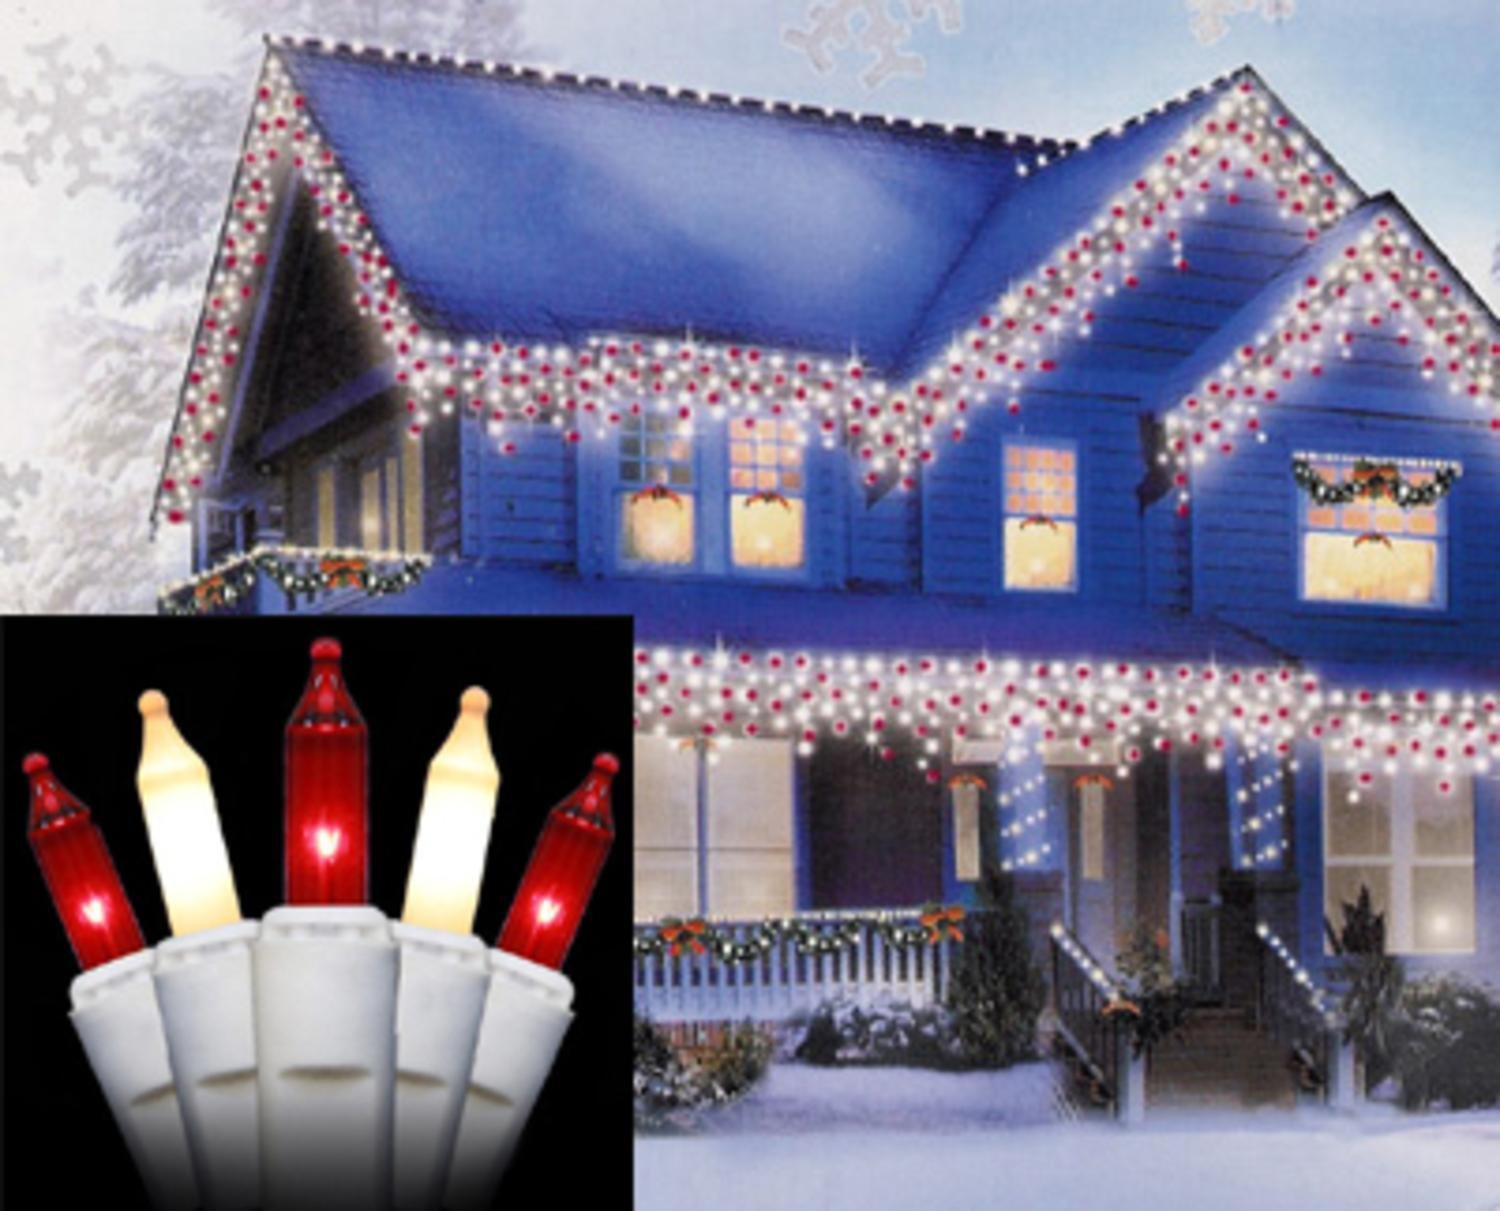 Amazon.com: Set of 100 Red and Frosted White Mini Icicle Christmas ...